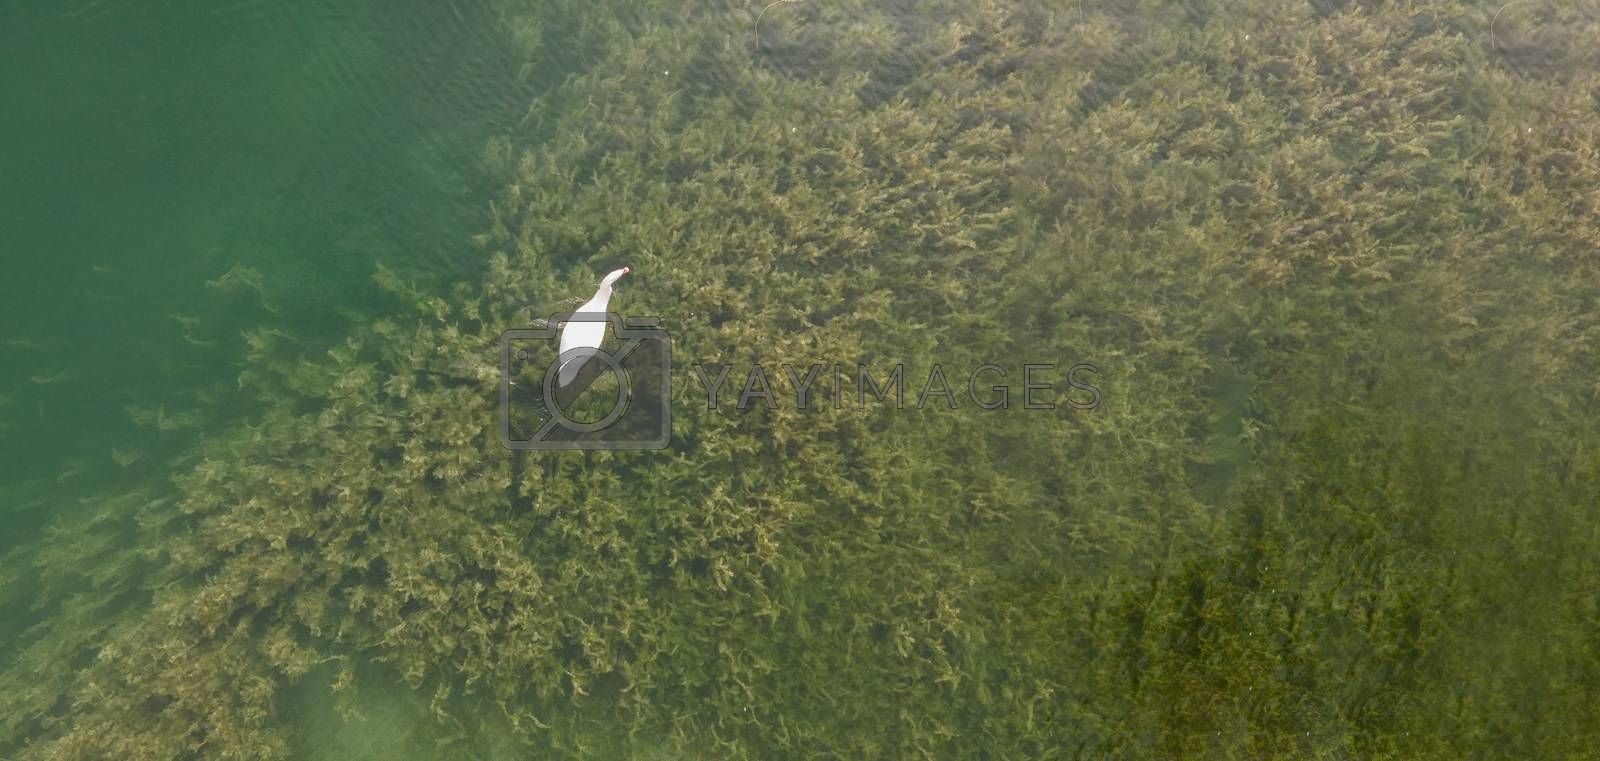 Swan in lake shot from a drone. Copy space